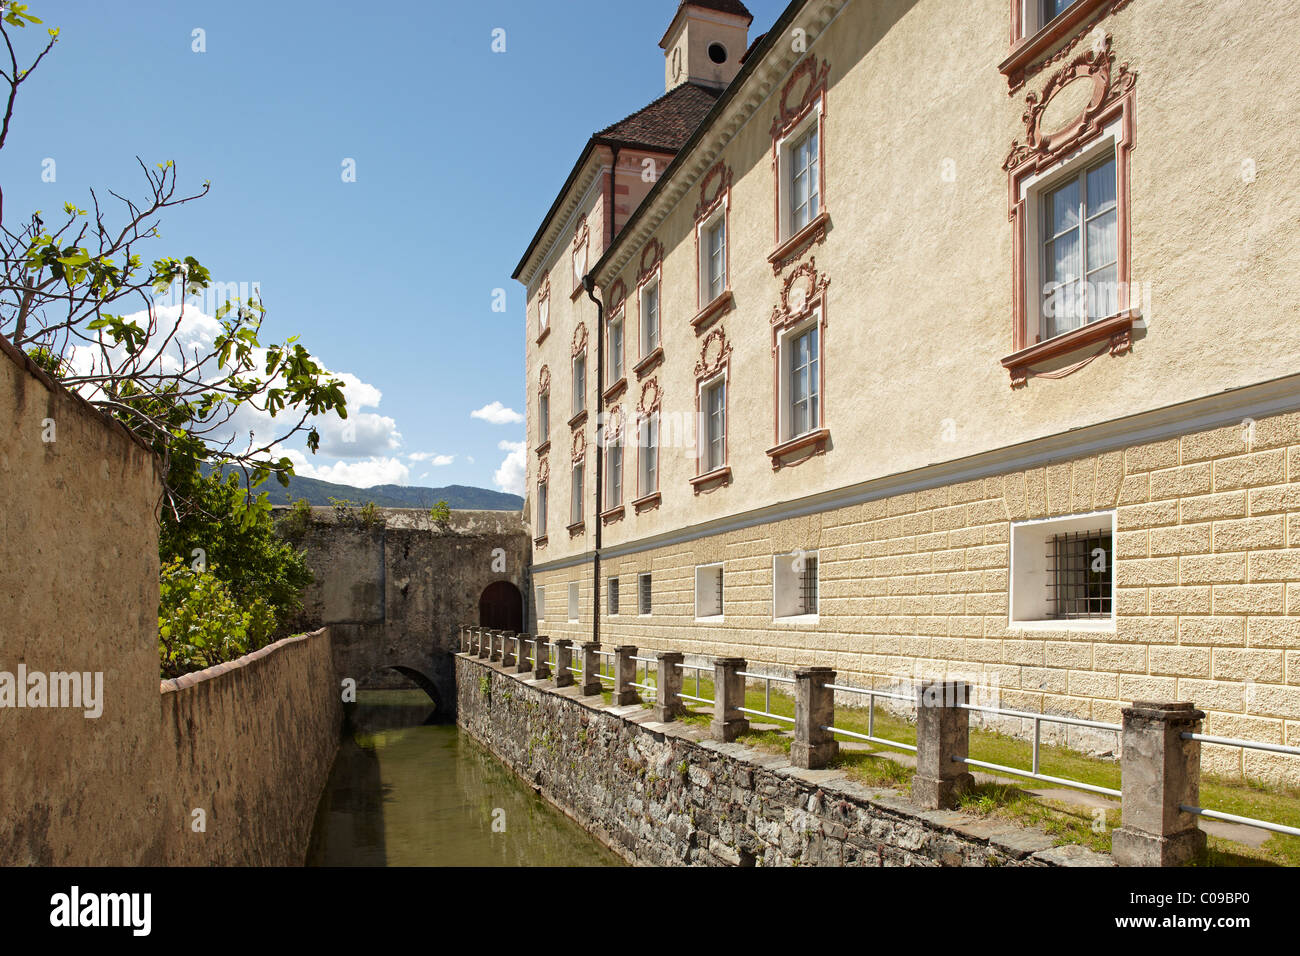 Hofburg Imperial palace and moat, Brixen, South Tyrol, Italy, Europe - Stock Image